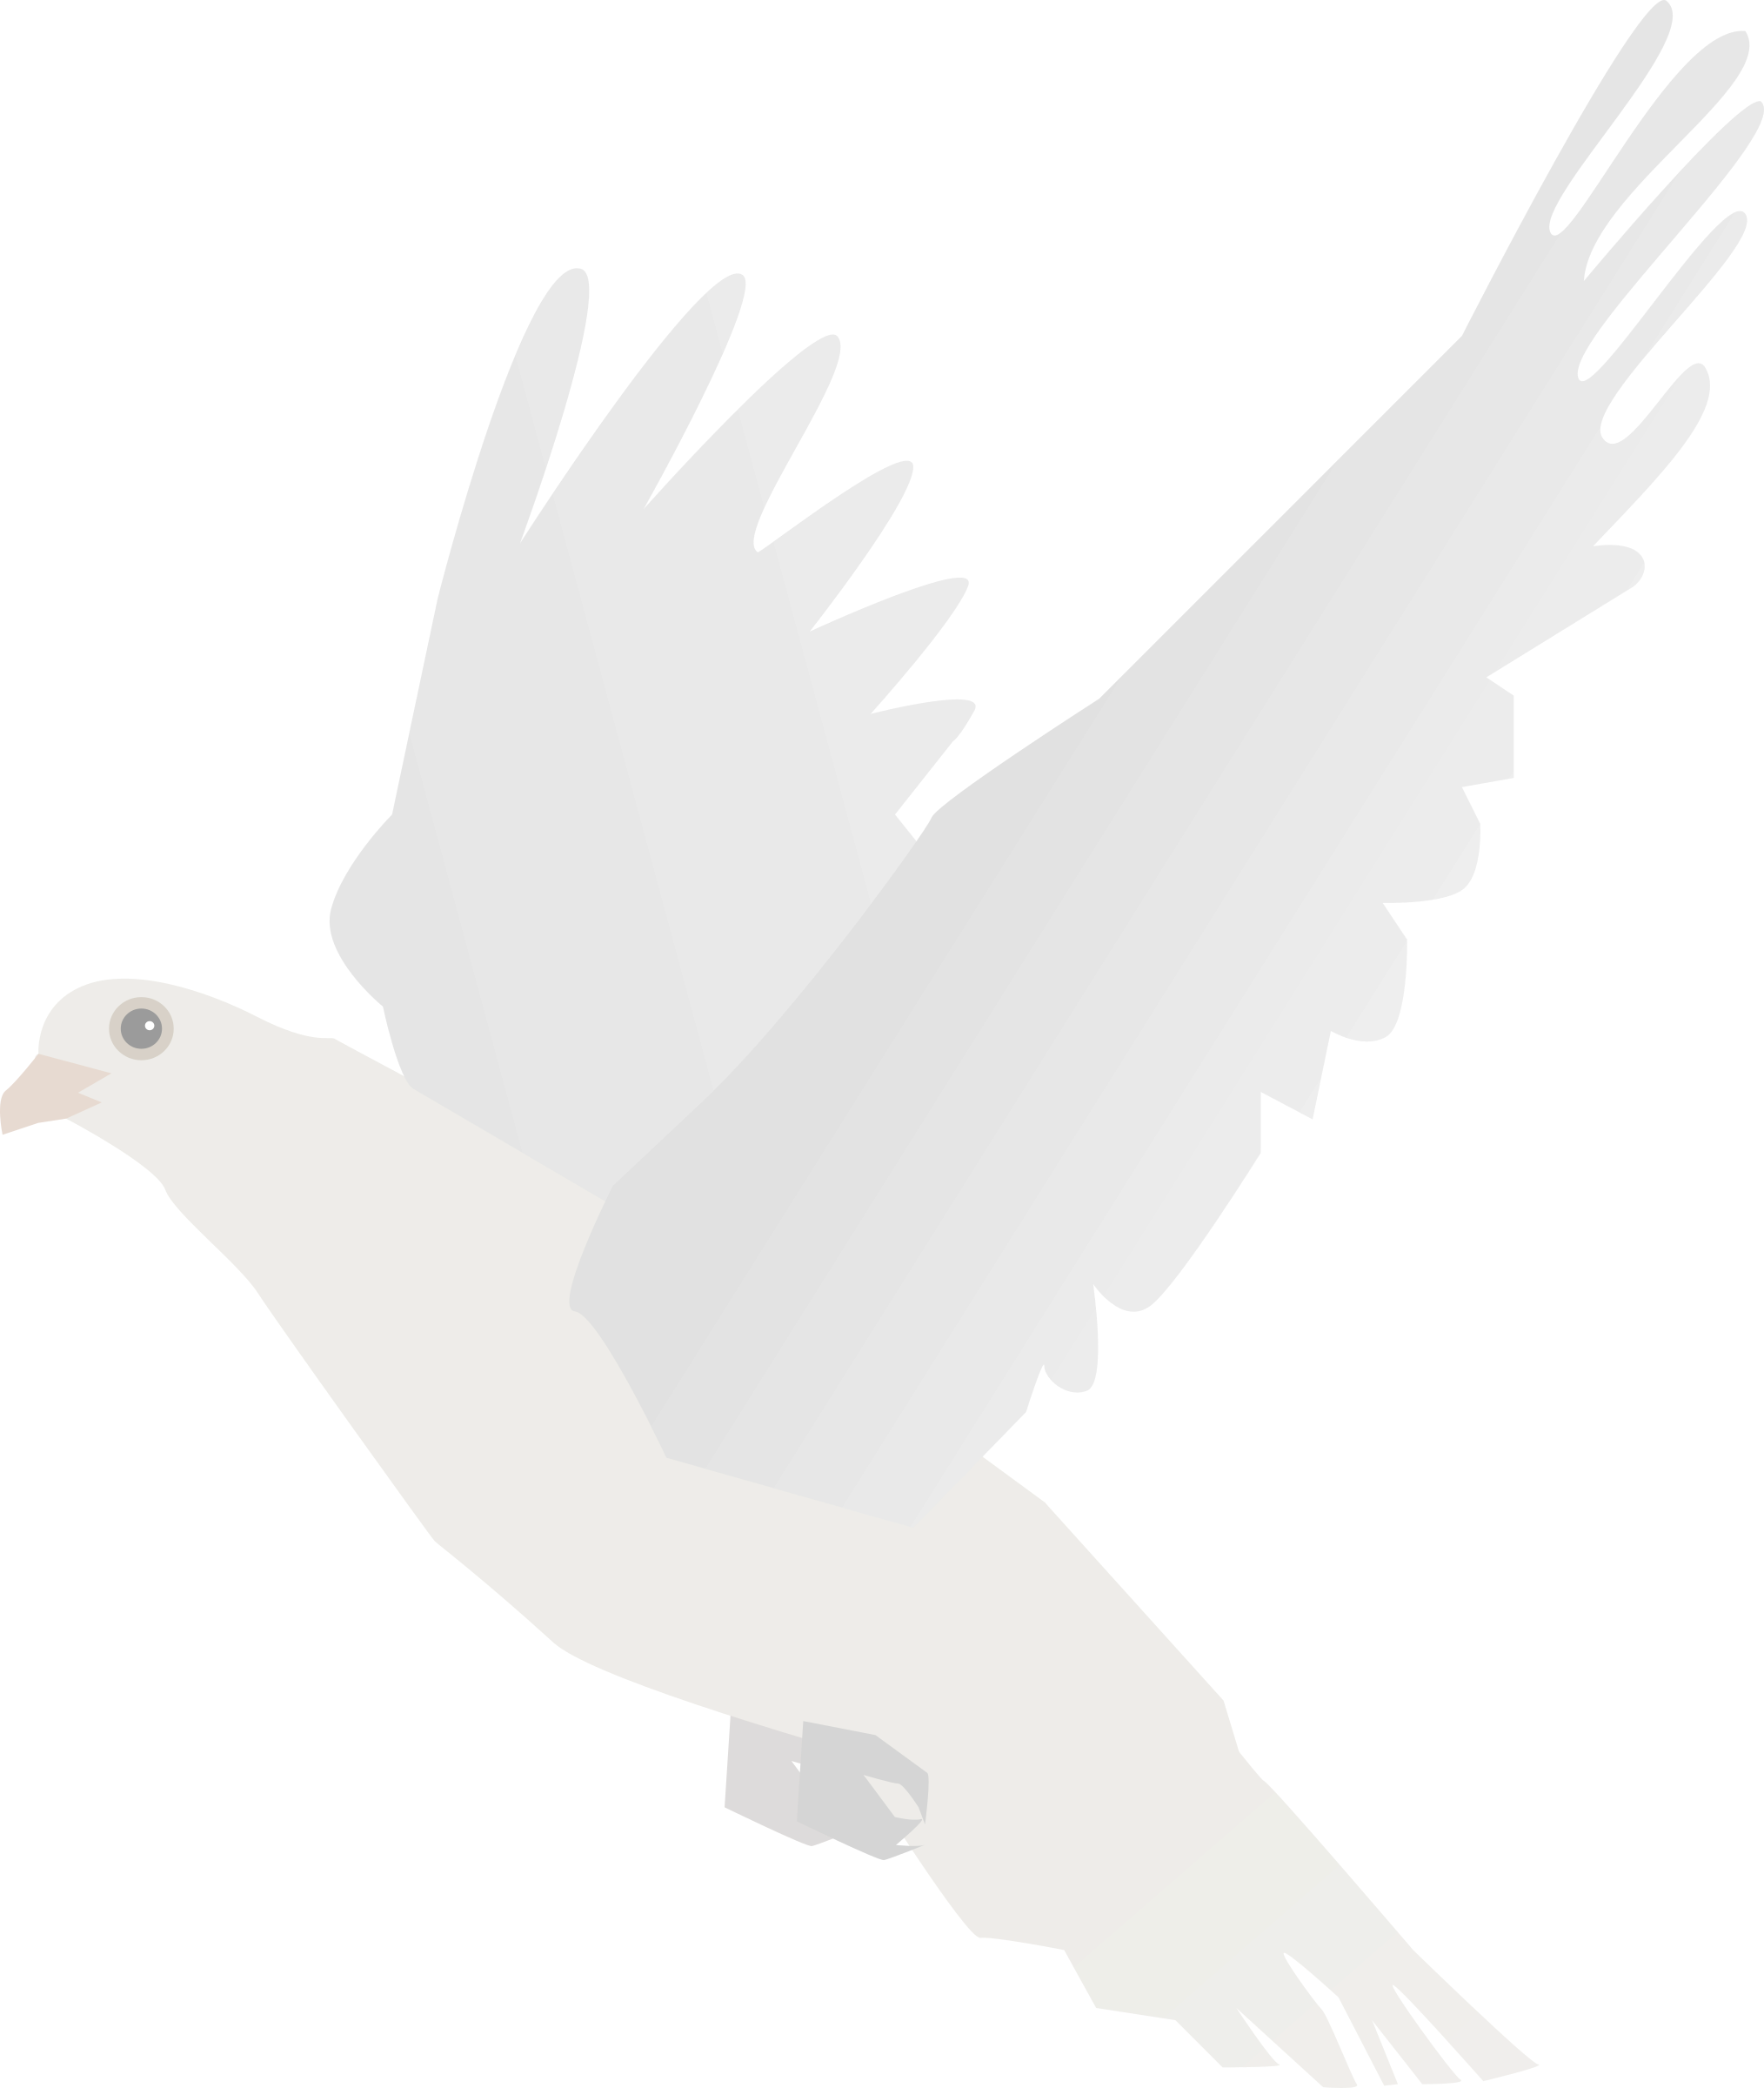 Doves clipart feather. Dove big image png